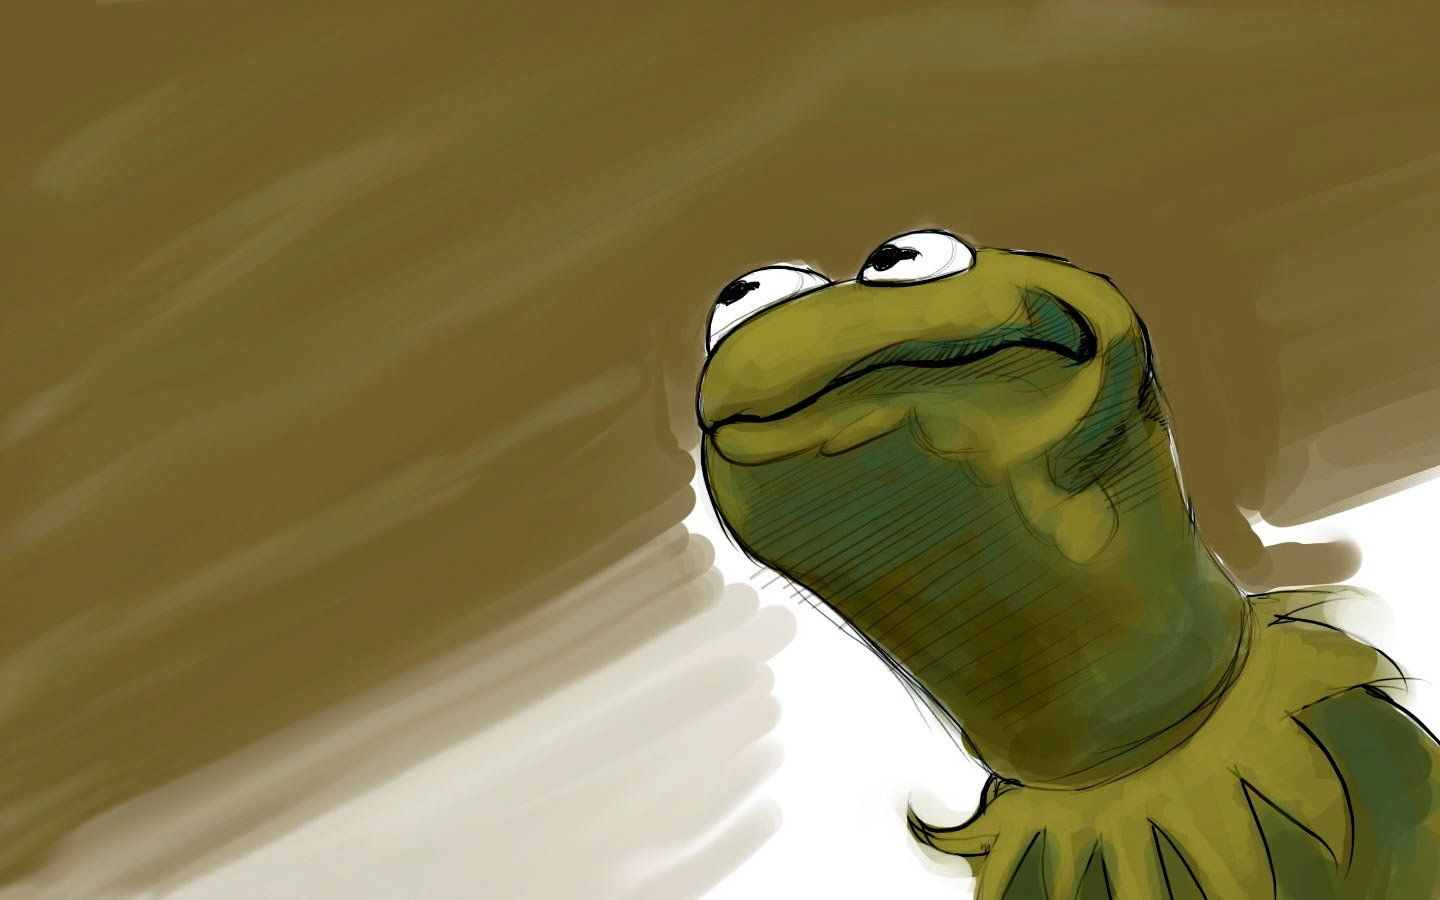 1440x900 5 Kermit the Frog HD Wallpapers | Background Images - Wallpaper Abyss